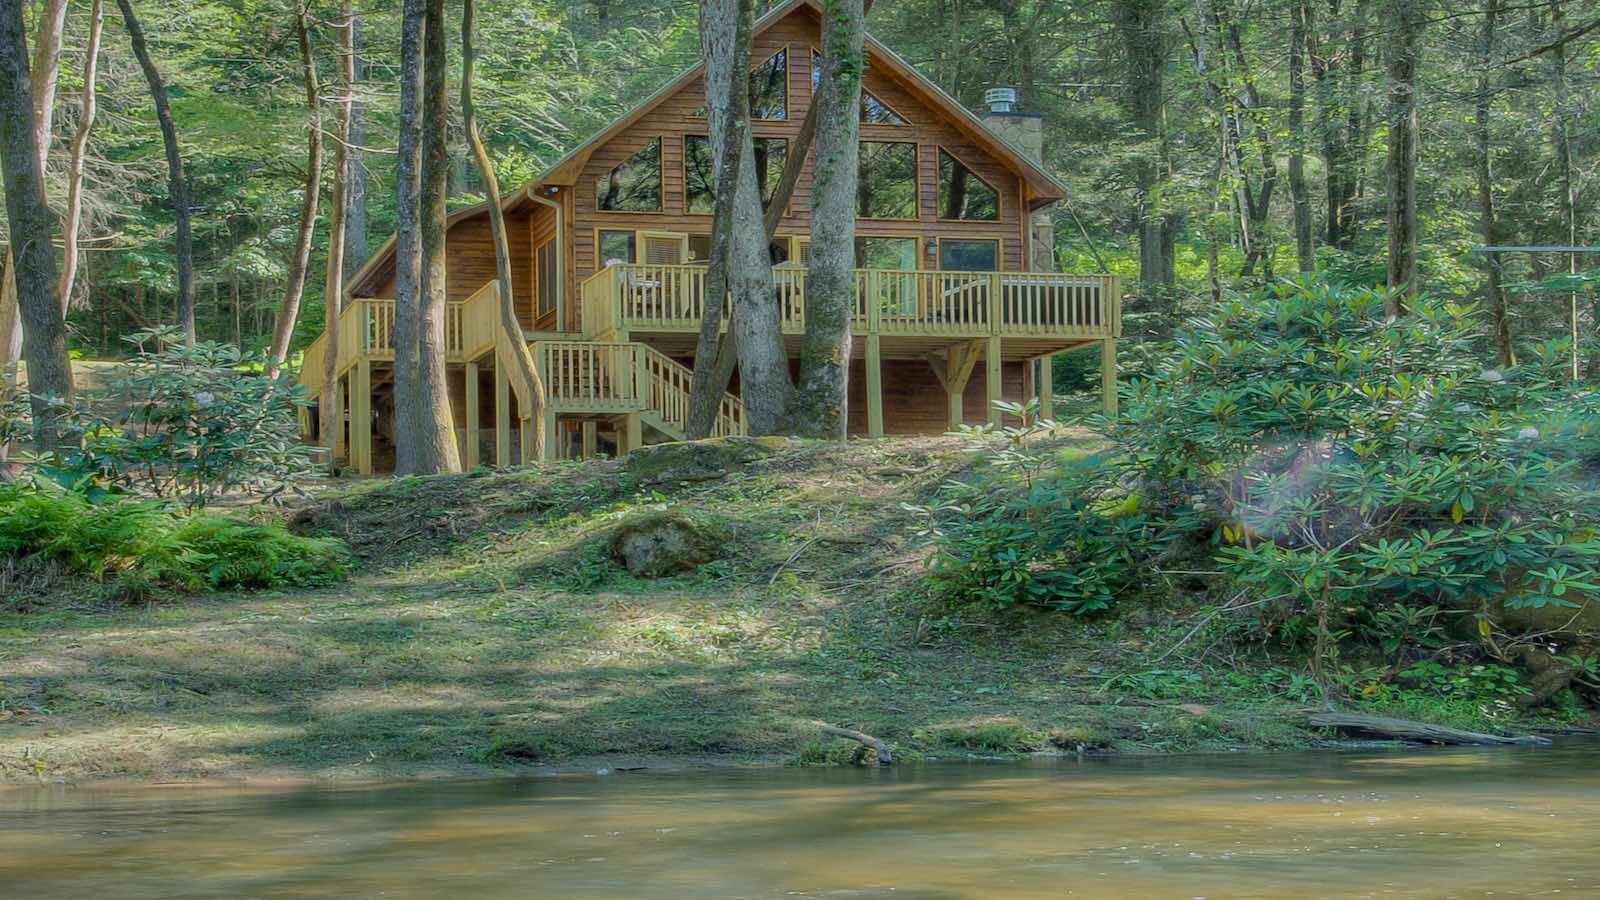 ga bear the cabins lodge rental ridge house blue rentals north pin in ar black mountains cabin georgia